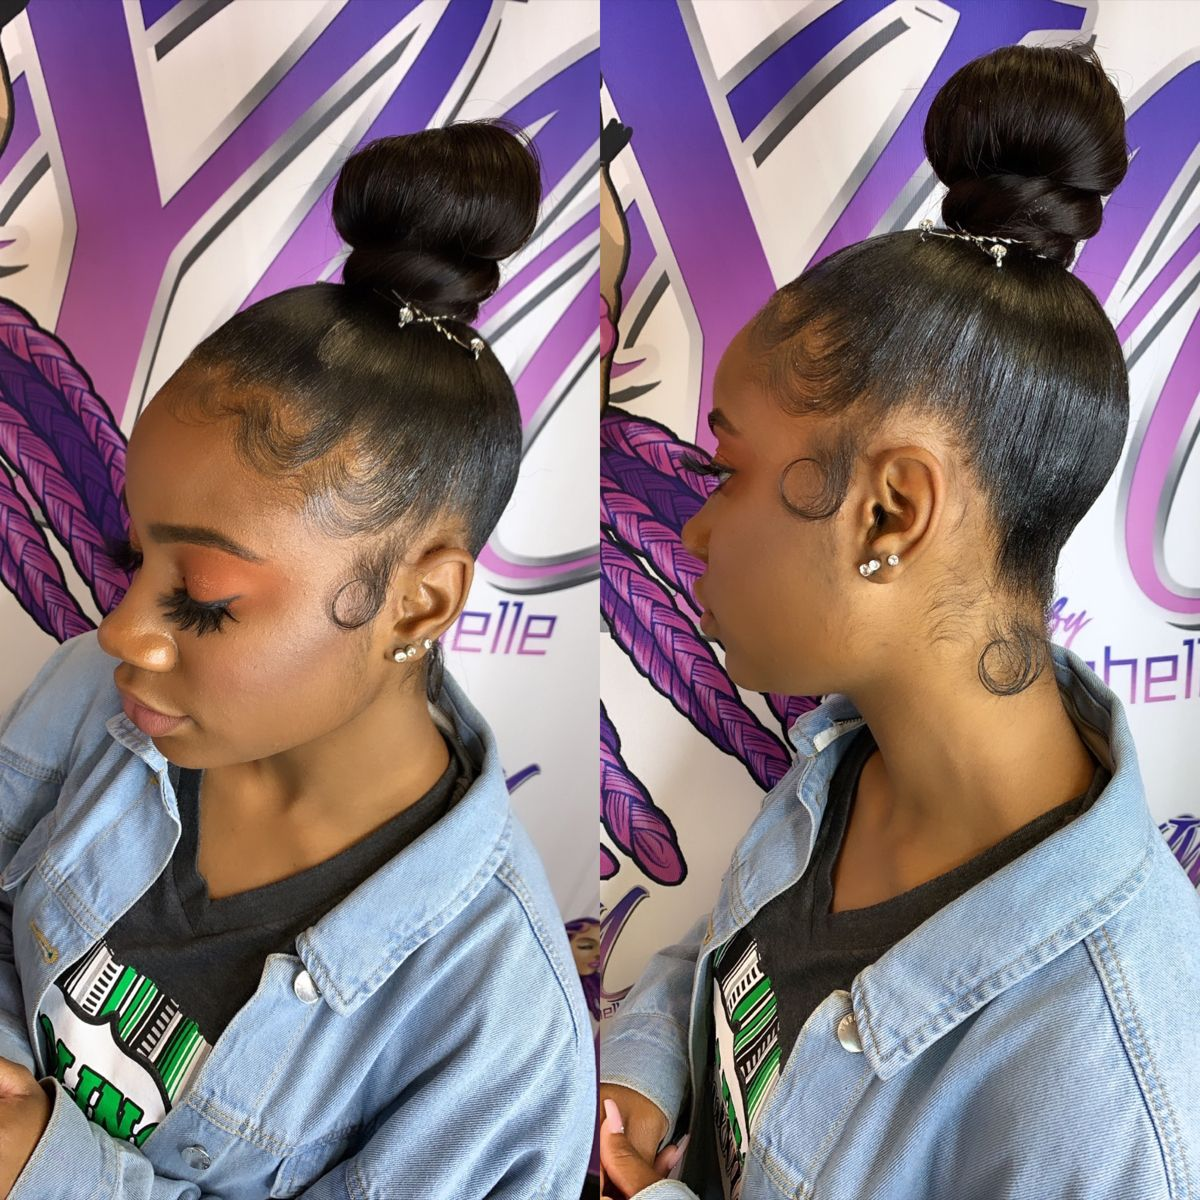 If You Want To Attract Anyones Attention You Should Choose One Of These Crazy Hair Colors022